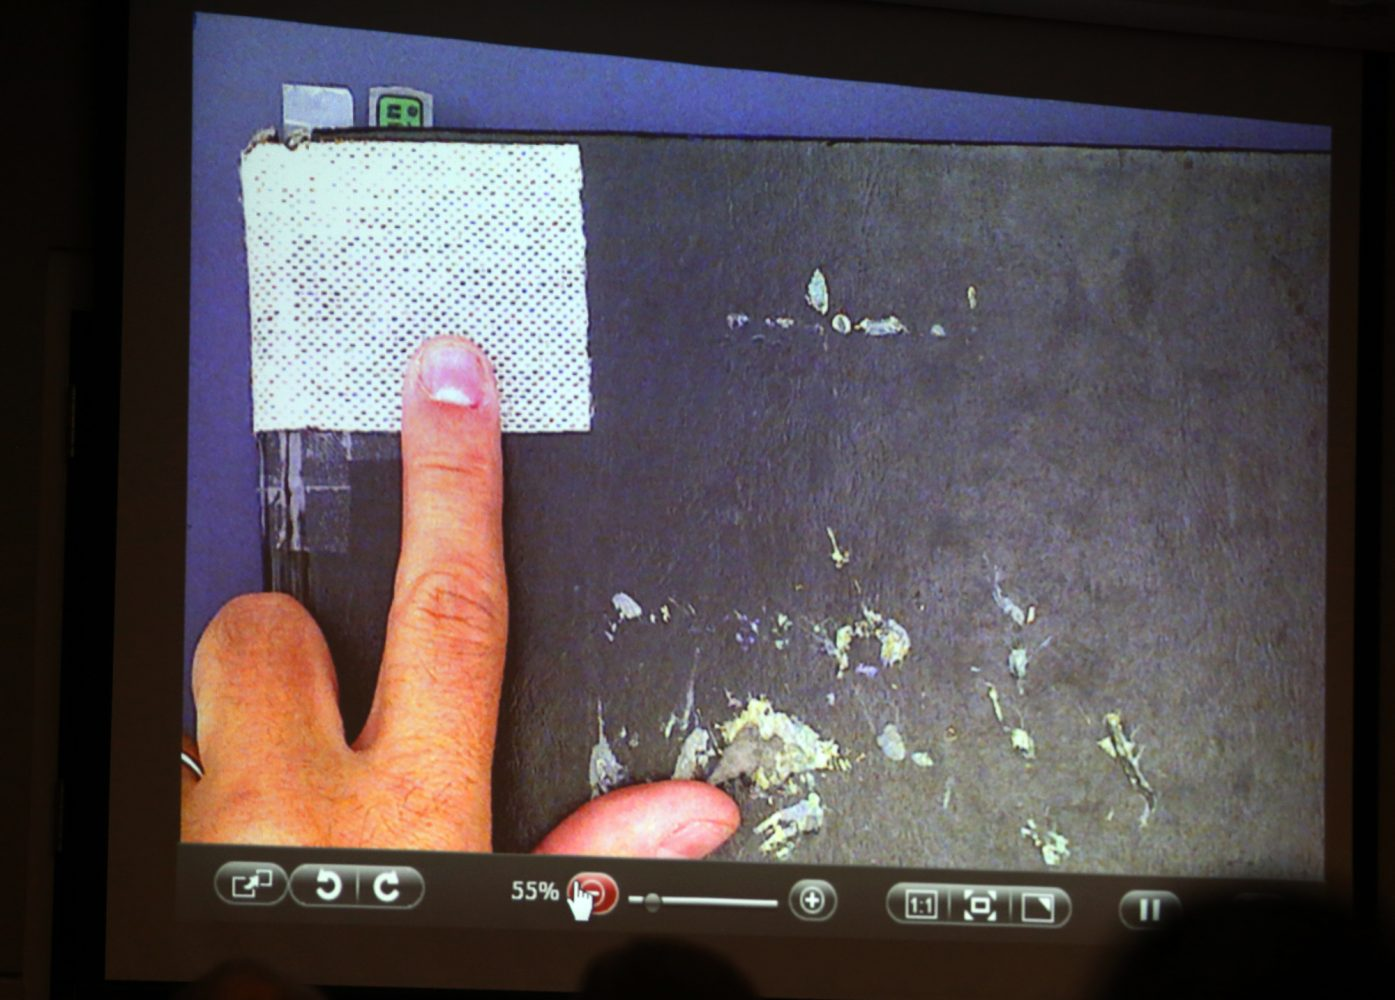 A piece of gauze located in a corner of Pedro Bravo's journal is pointed out to the jury during Bravo's murder trial in courtroom 1B of the Alachua County Criminal Justice Center Friday, August 8, 2014.  Bravo is accused of killing University of Florida student Christian Aguilar.  (Doug Finger/The Gainesville Sun) in a corner of Pedro Bravo's journal is pointed out to the jury during Bravo's murder trial in courtroom 1B of the Alachua County Criminal Justice Center Friday, August 8, 2014.  Bravo is accused of killing University of Florida student Christian Aguilar.  (Doug Finger/The Gainesville Sun/Pool)